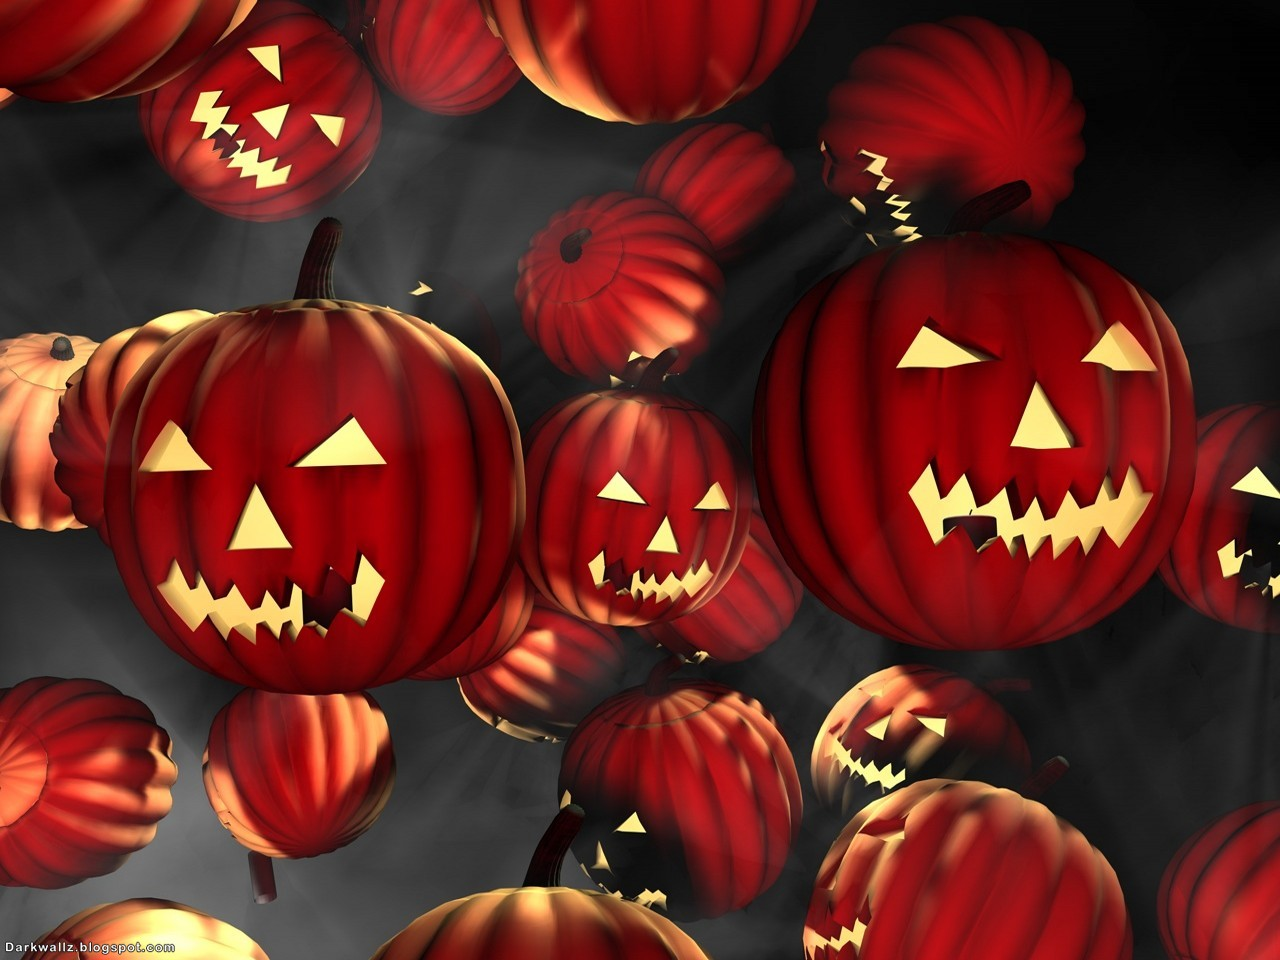 Halloween Wallpapers 121 | Dark Wallpaper Download